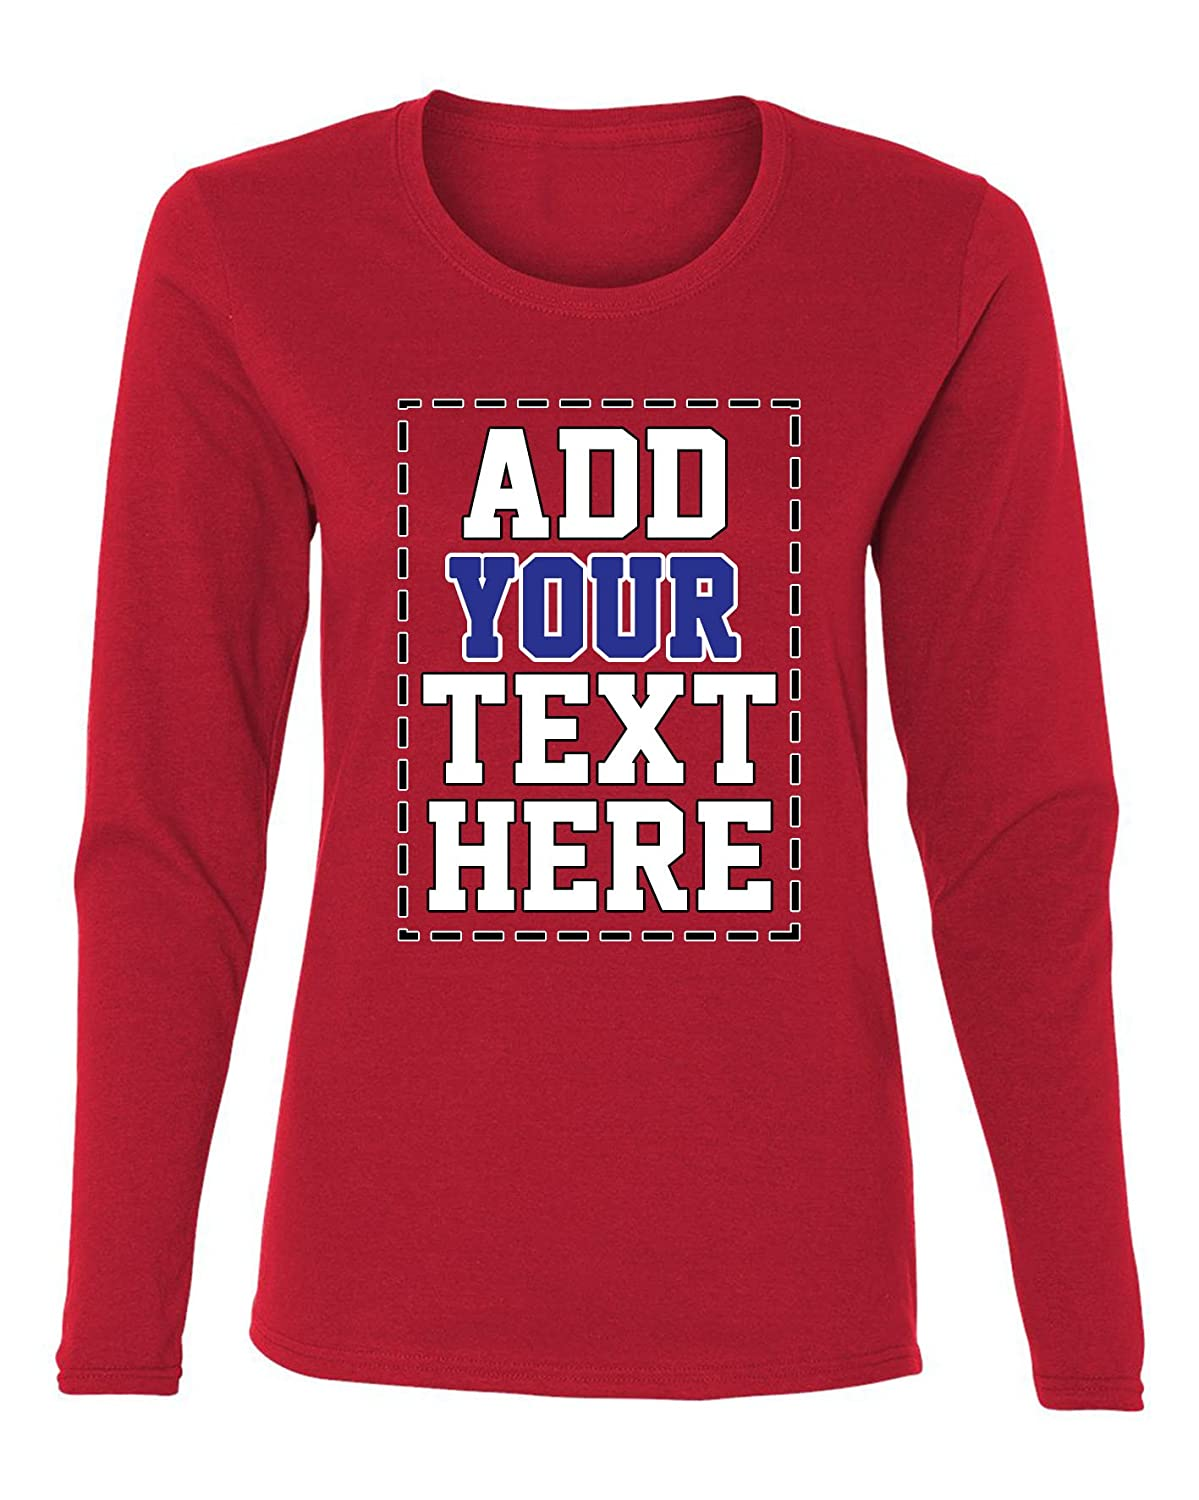 9faac3fb Amazon.com: Custom Long Sleeve Shirts for Women - Make Your OWN Shirt - Add  Your Text Number Printing: Clothing